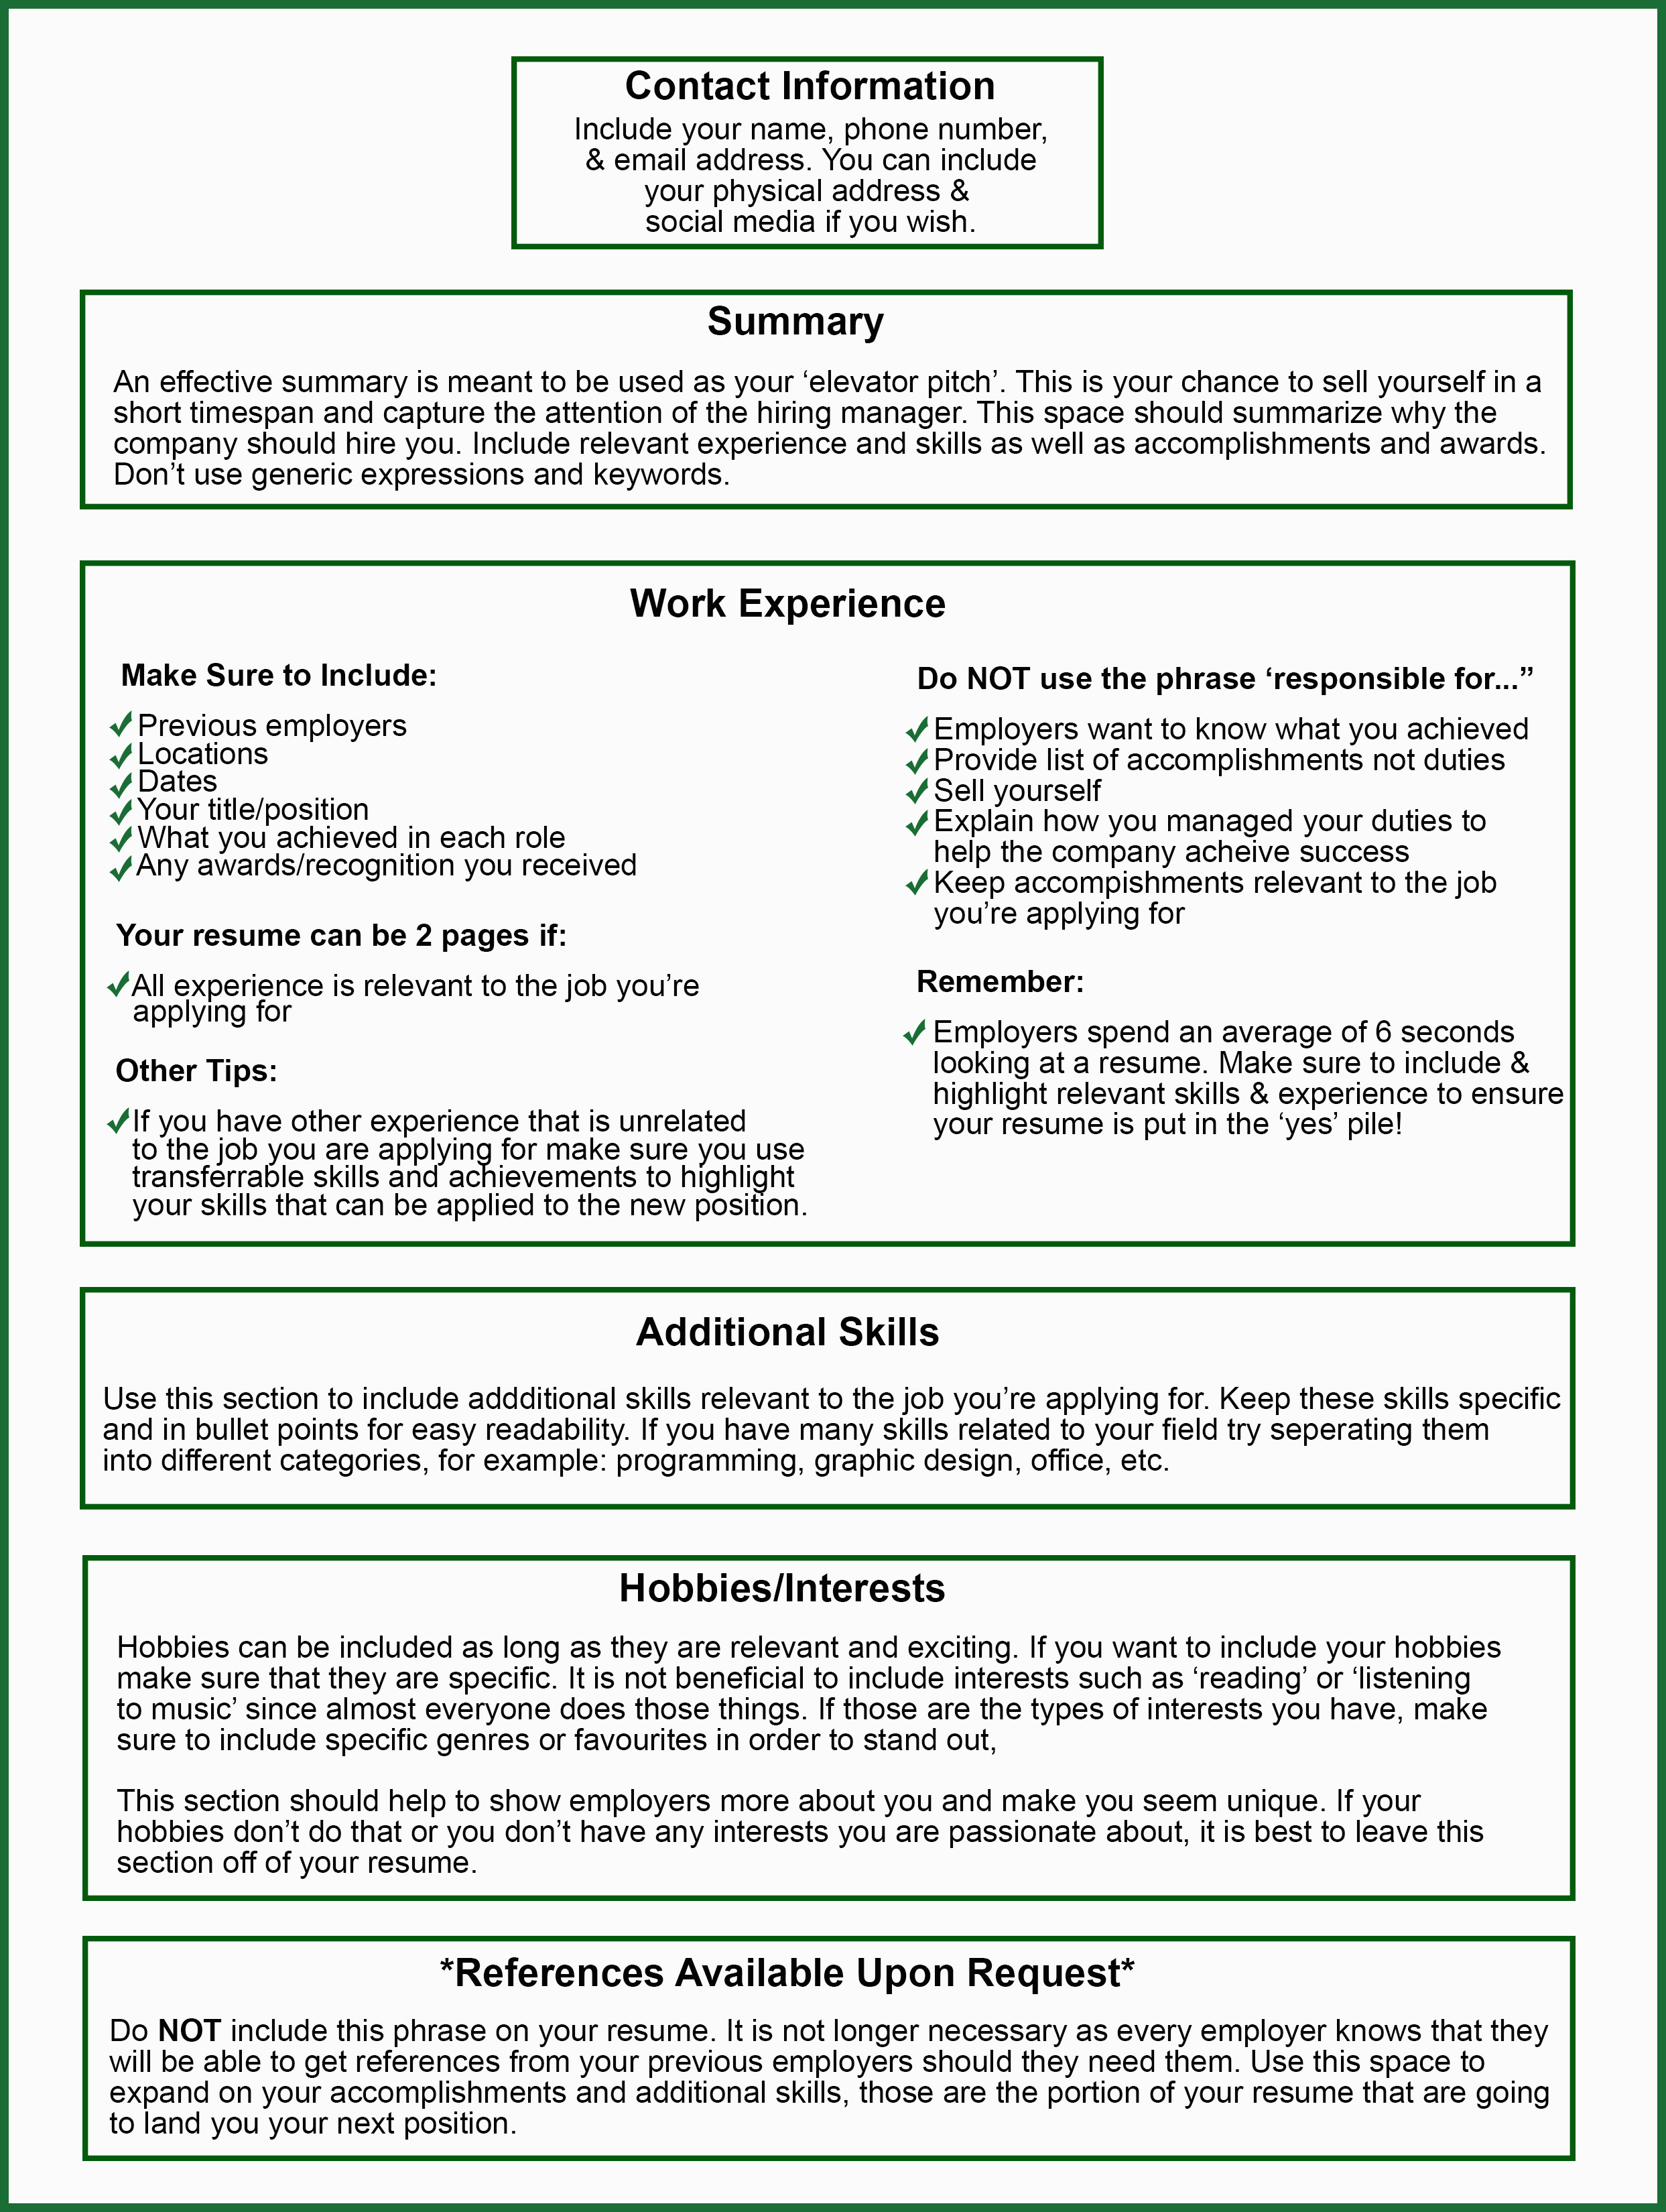 putting references on resume should you include references on